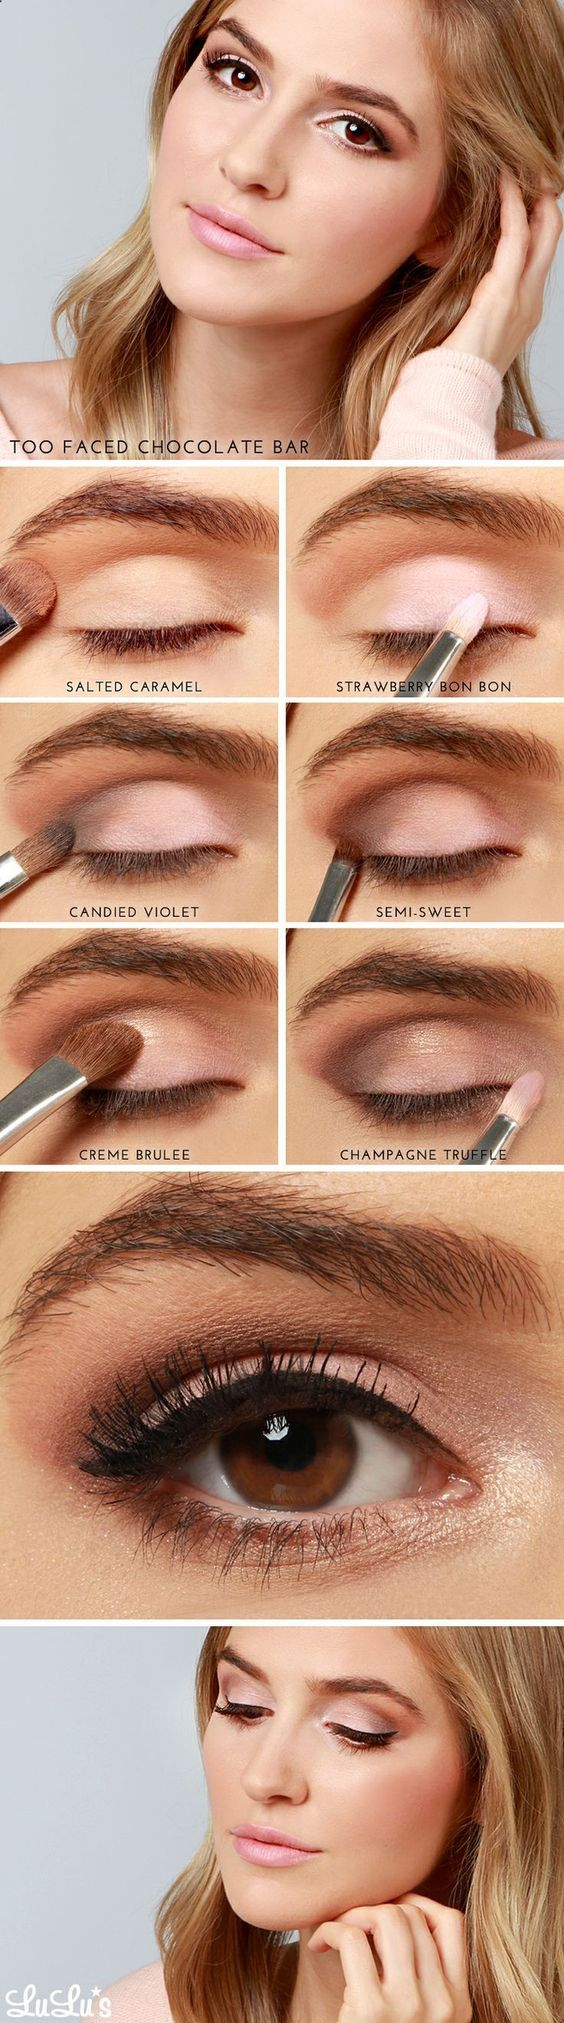 Forget the box of chocolate this year and tell your beau you want the new Too Faced Chocolate Bar Eye Shadow! You'll be moonstruck with your makeup with this palette comprised of natural browns, delicate pinks and luscious plums. With 16 matte and shimmer shades pigmented by pure, antioxidant-rich cocoa powder, the possibilities are endless!: